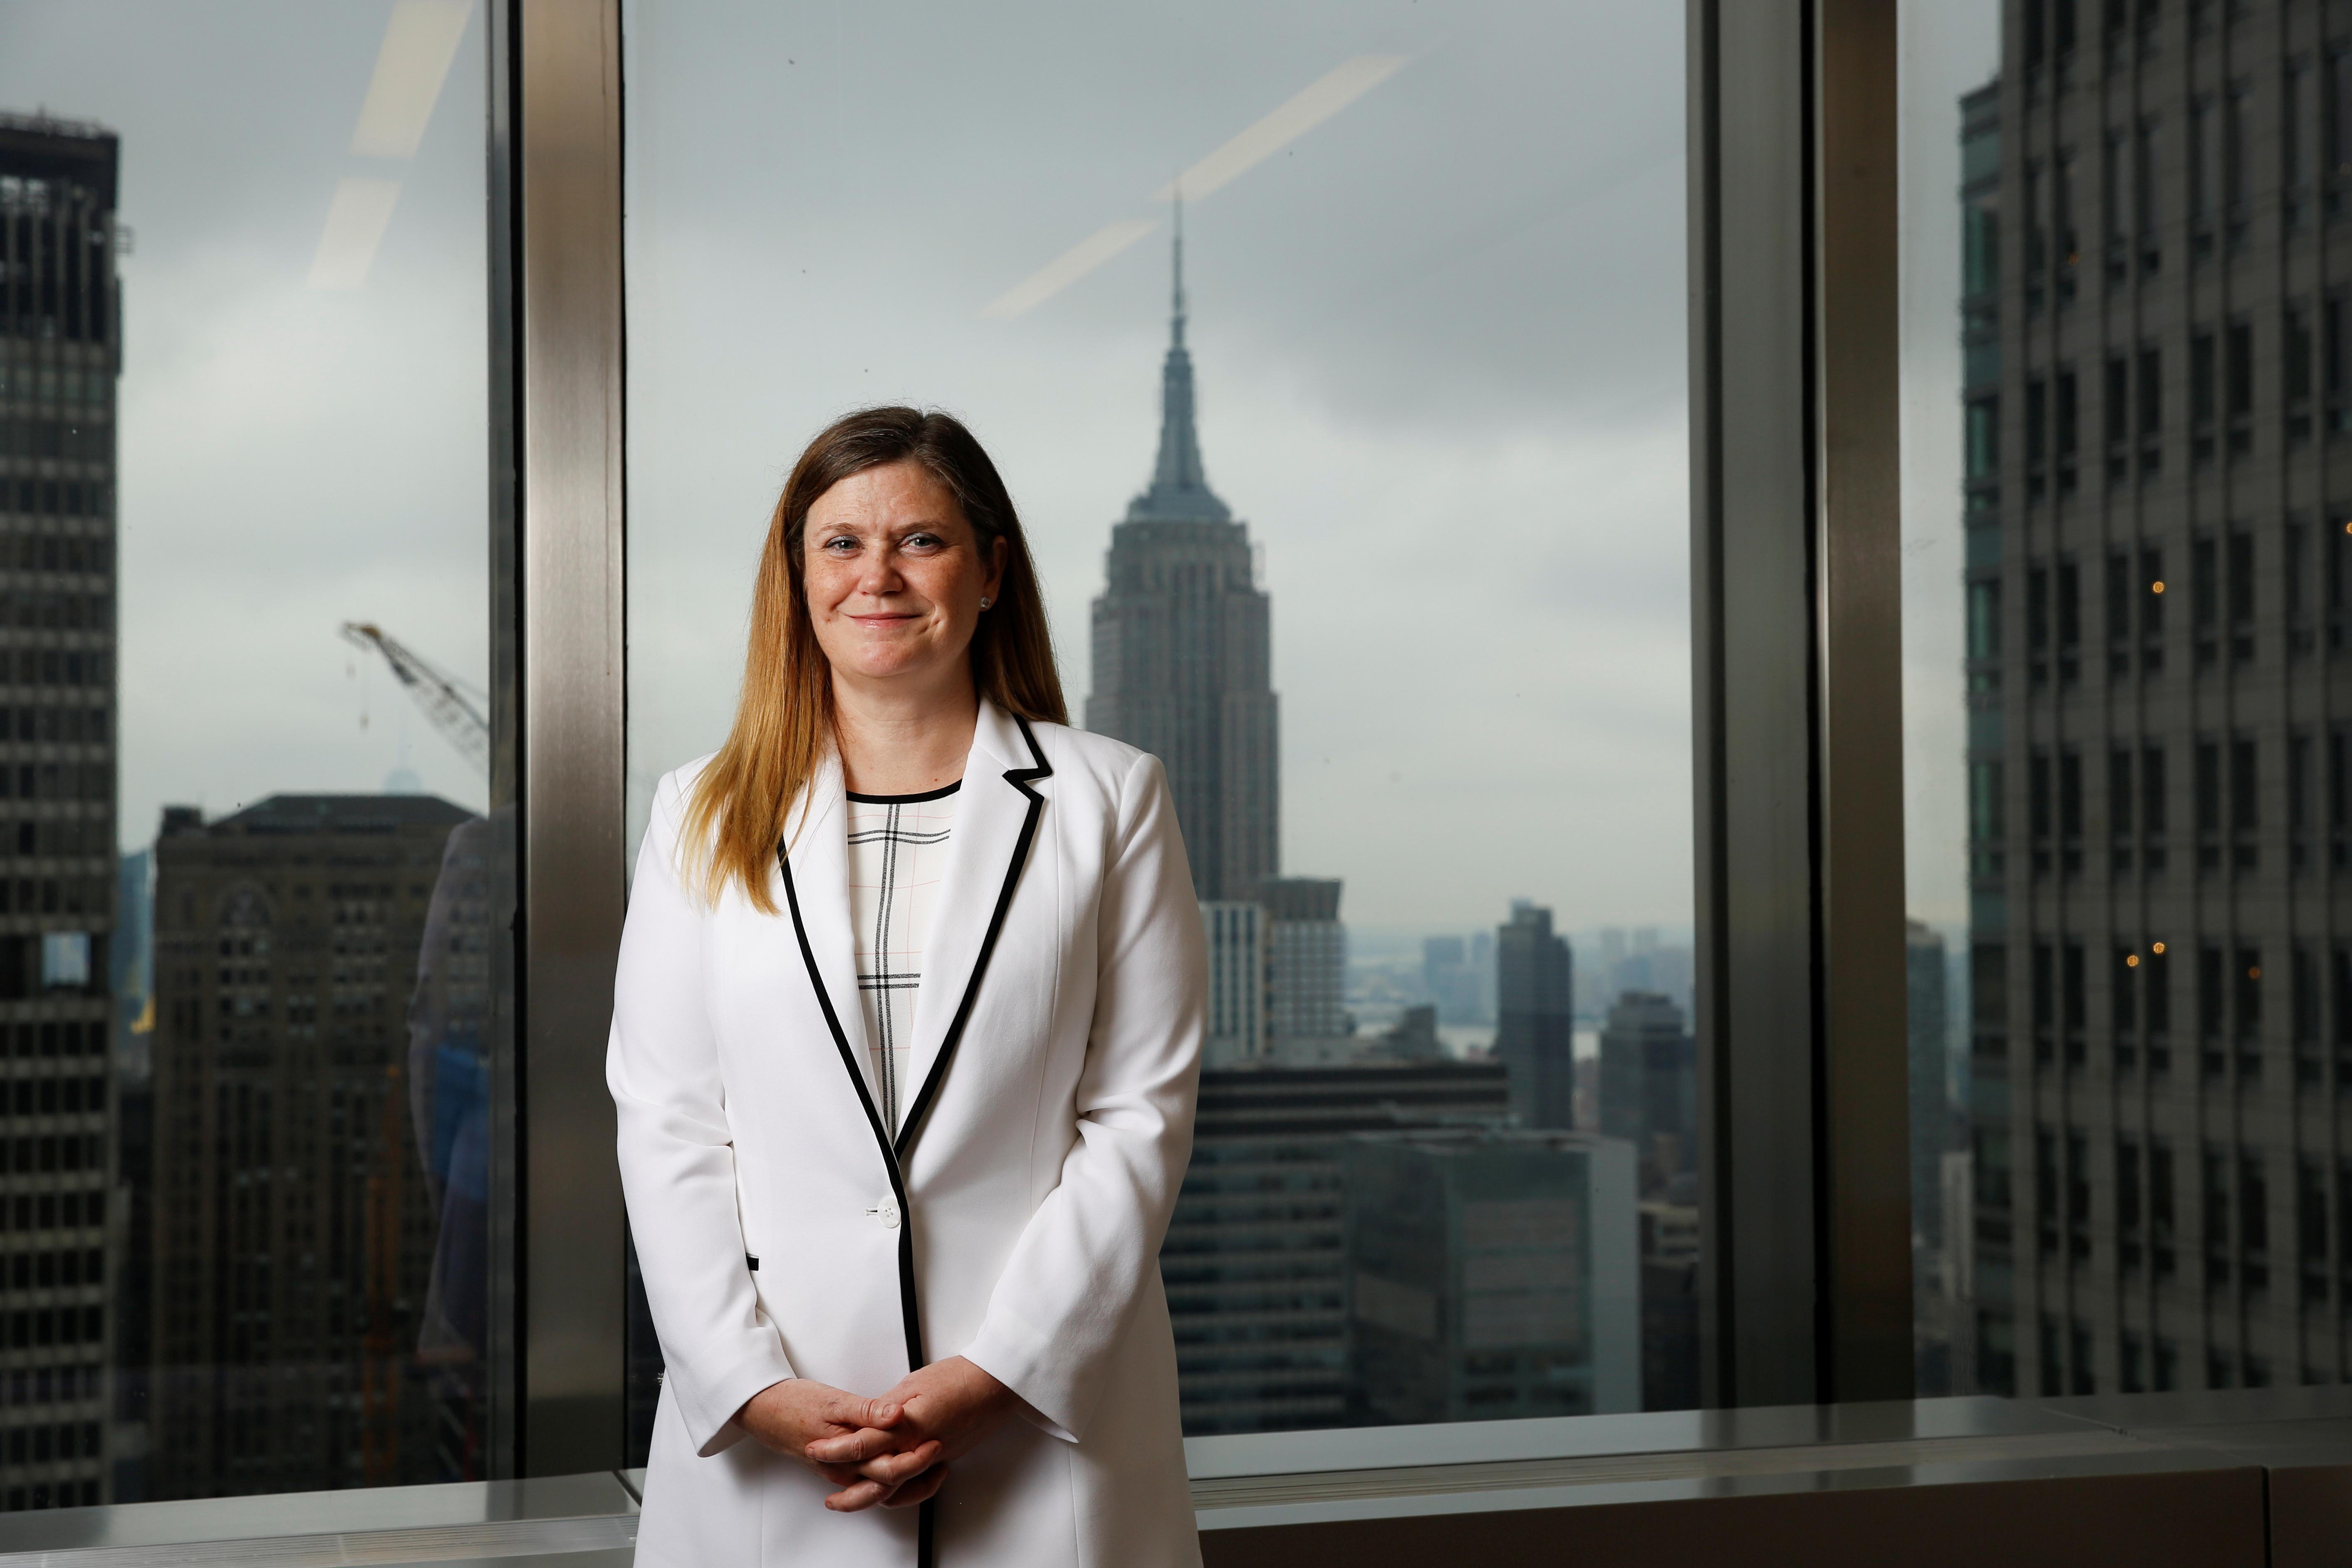 This is 'one of the biggest hurdles' for women trying to get ahead in finance